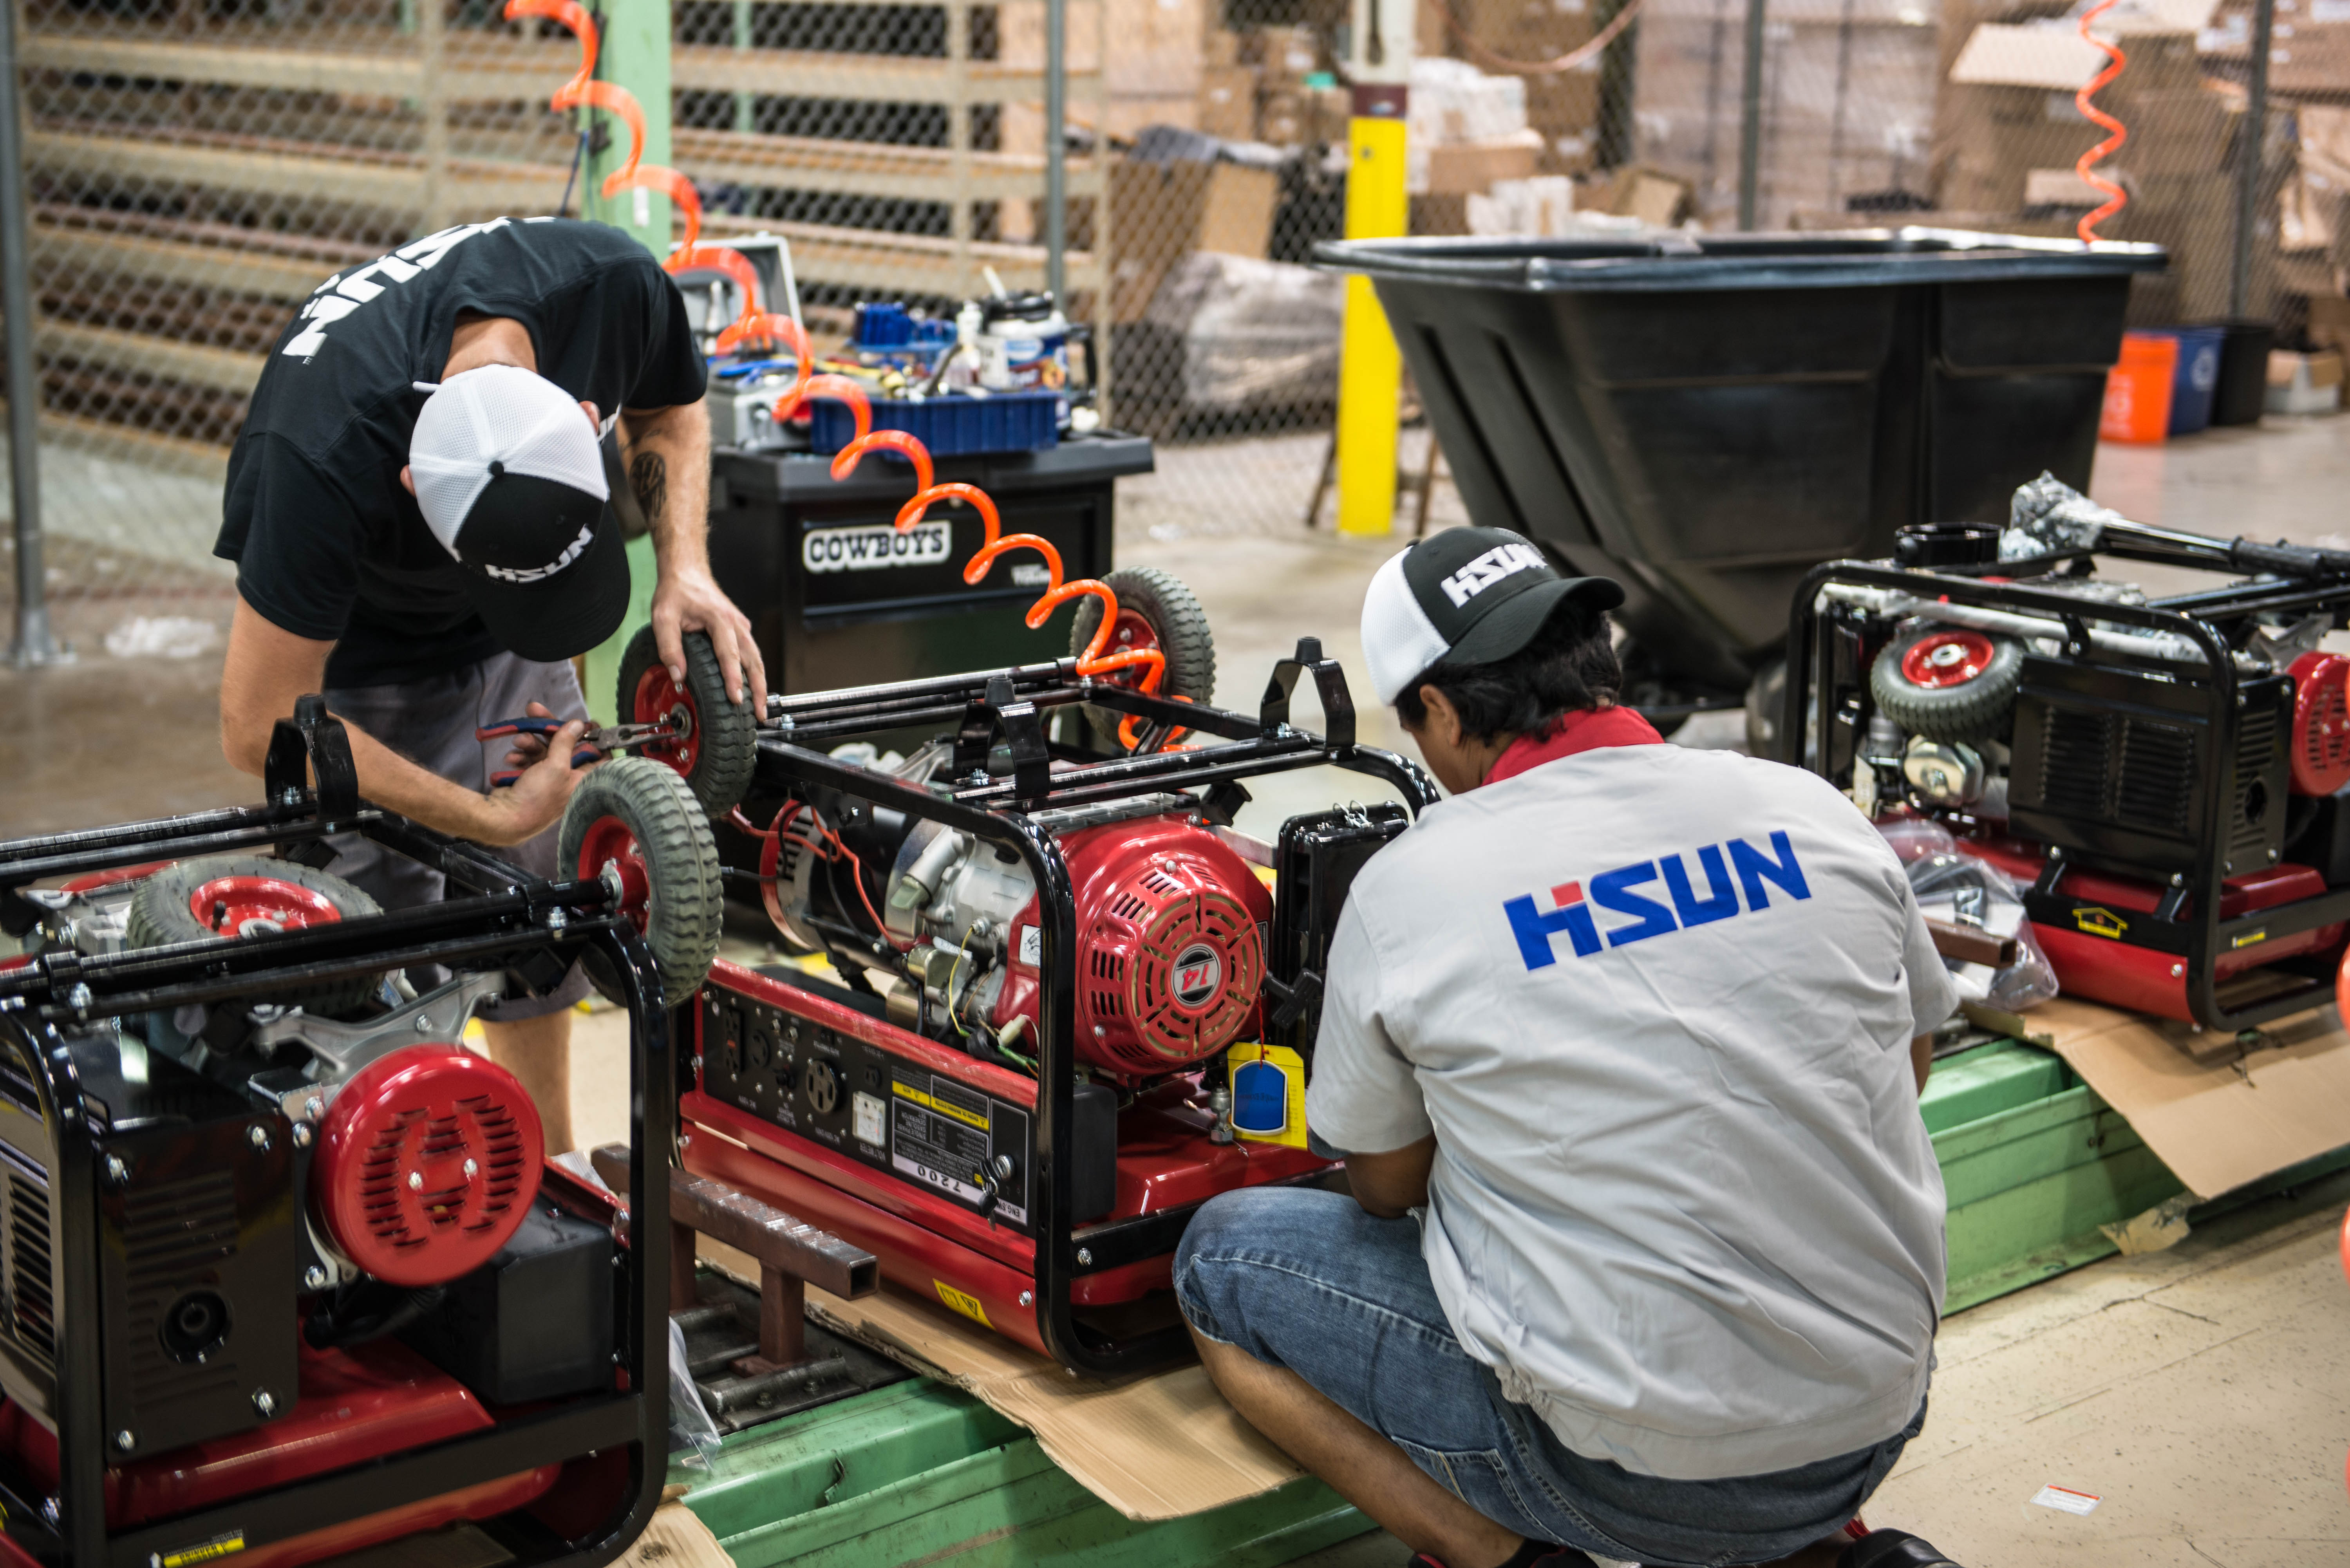 Hisun Motors Donates $225,000 to Hurricane Victims | Dirt Wheels ...